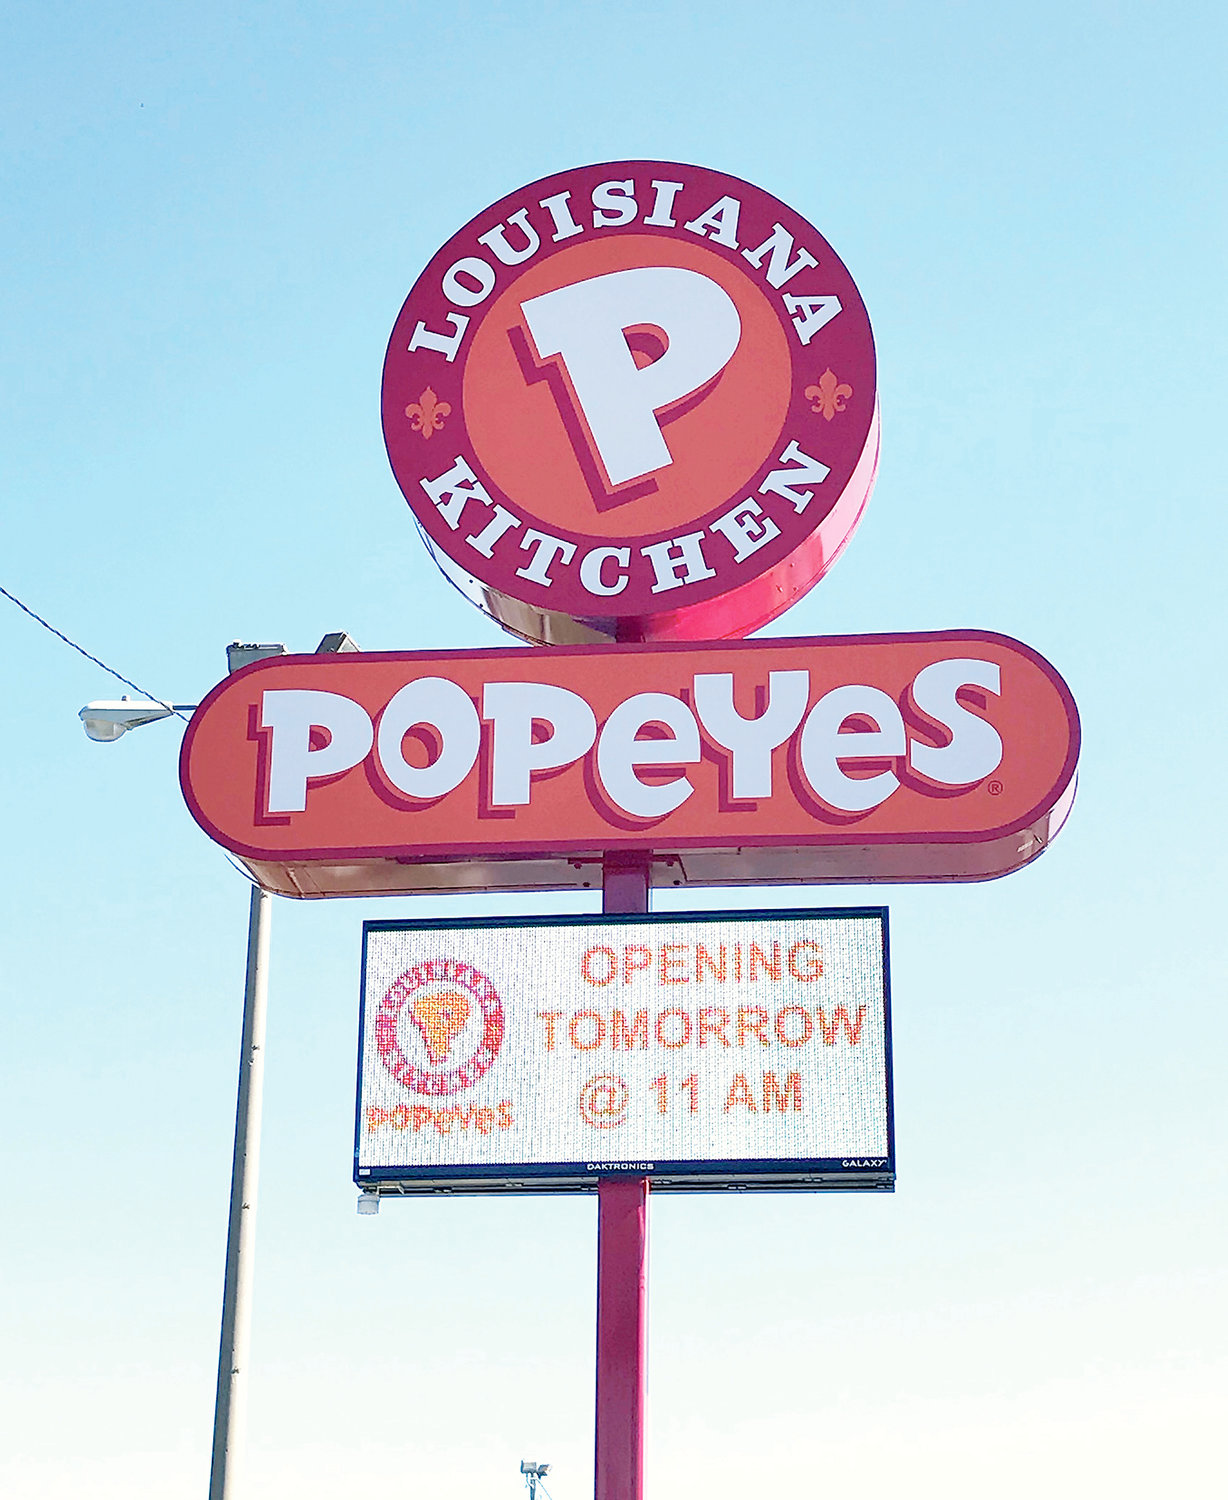 Jasper's restaurant scene is about to get spicy. A sign on Wednesday indicated that Popeyes Louisiana Kitchen will open for business today at 11 a.m. The new restaurant, located along Highway 78 East next to Full Moon Bar-B-Que, was announced in May and construction occurred over the summer.